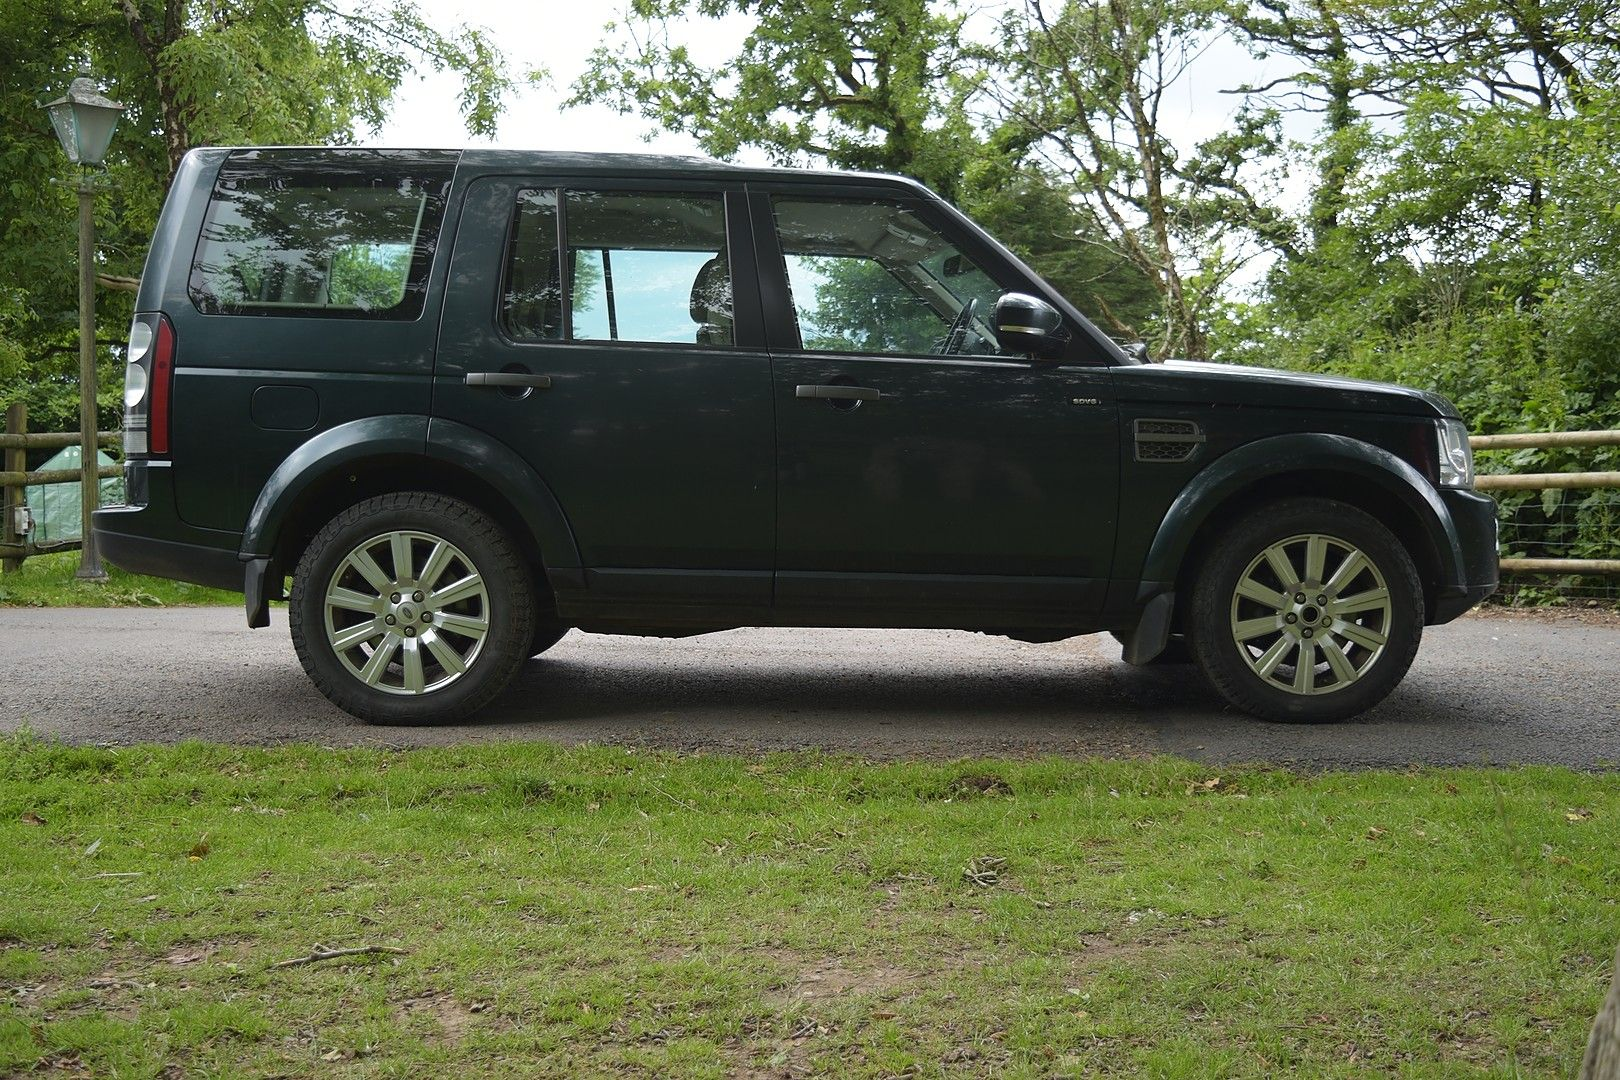 LAND ROVER Discovery 3.0 SDV6 GS - Thumbnail 4